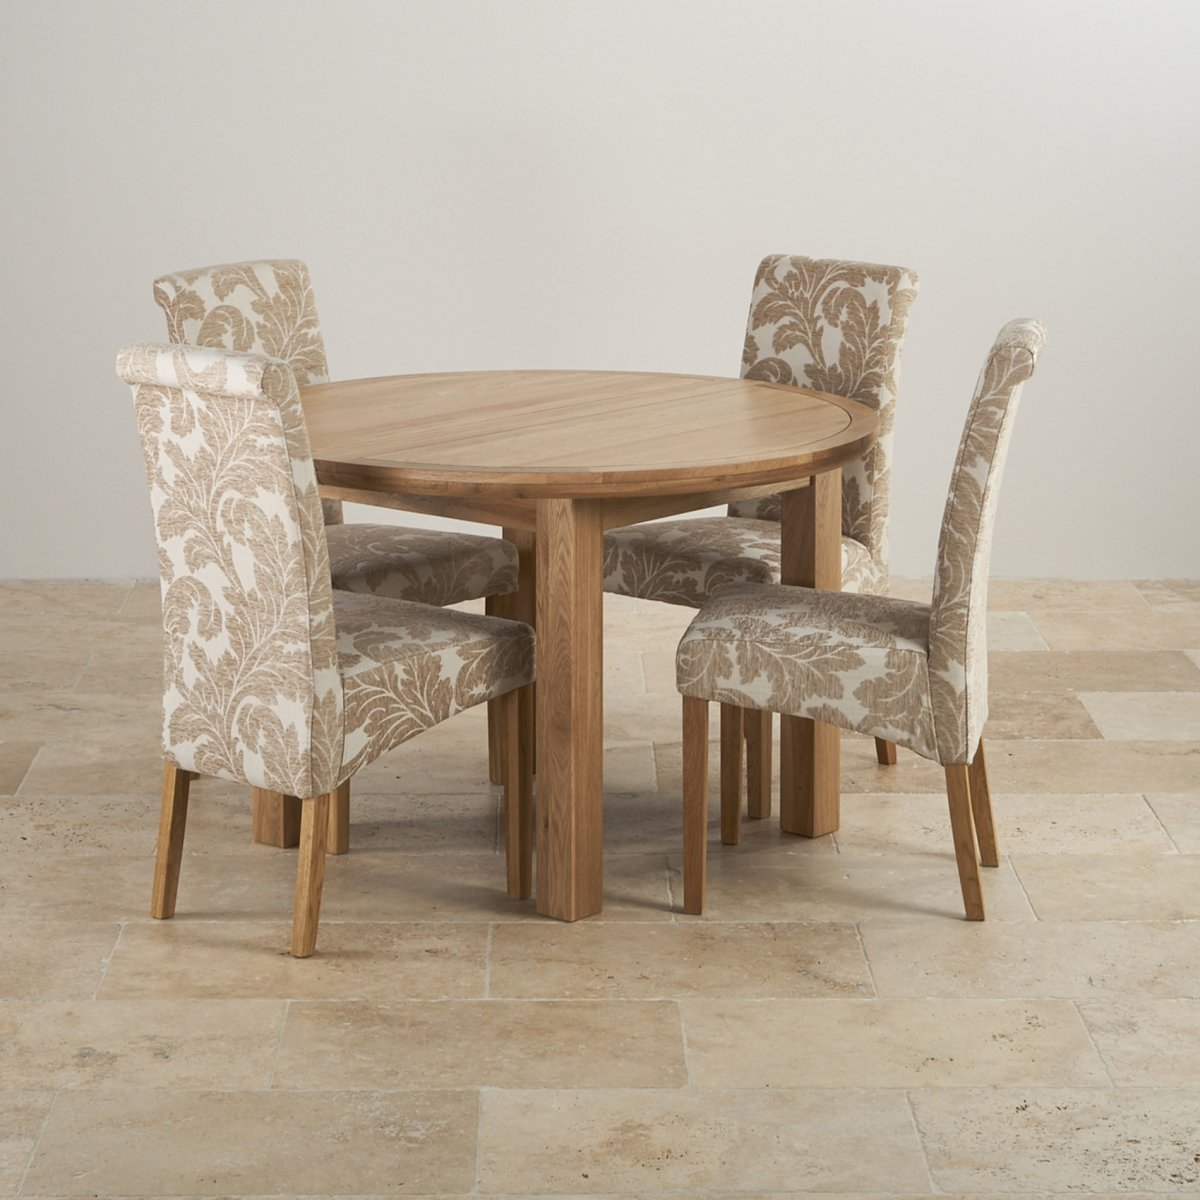 Dining Set Round Table: Knightsbridge Oak Dining Set